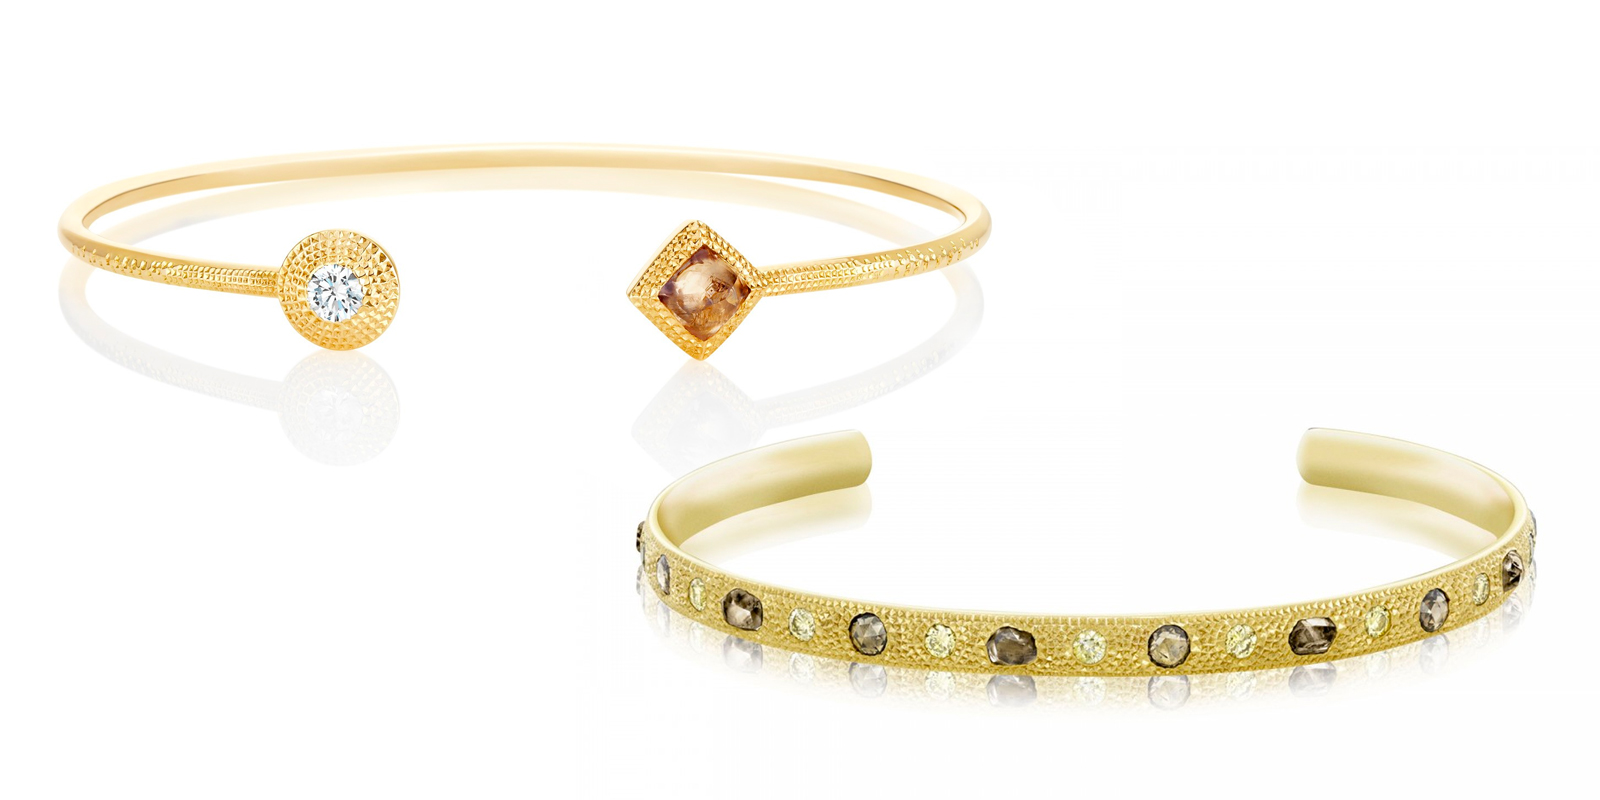 De Beers Talisman collection open bangles in yellow gold with rough and faceted diamonds